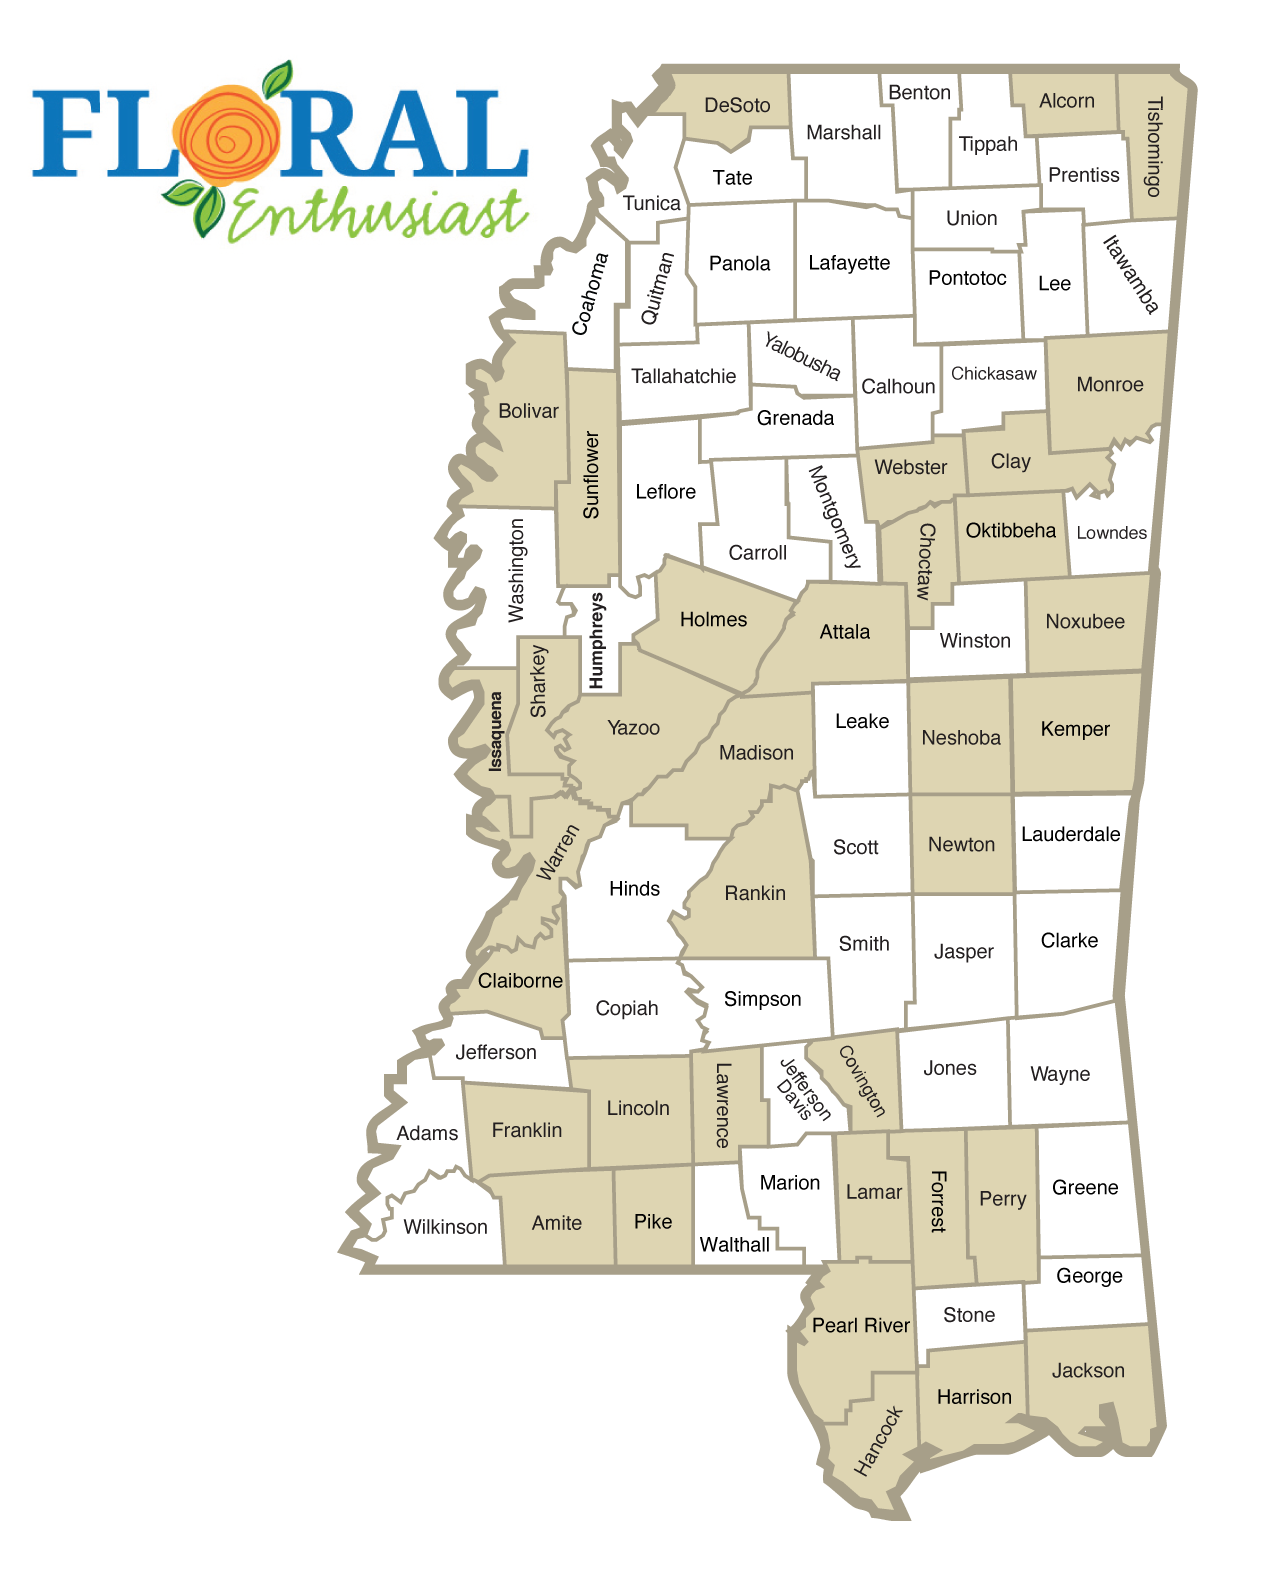 Mississippi map highlighting counties listed in text